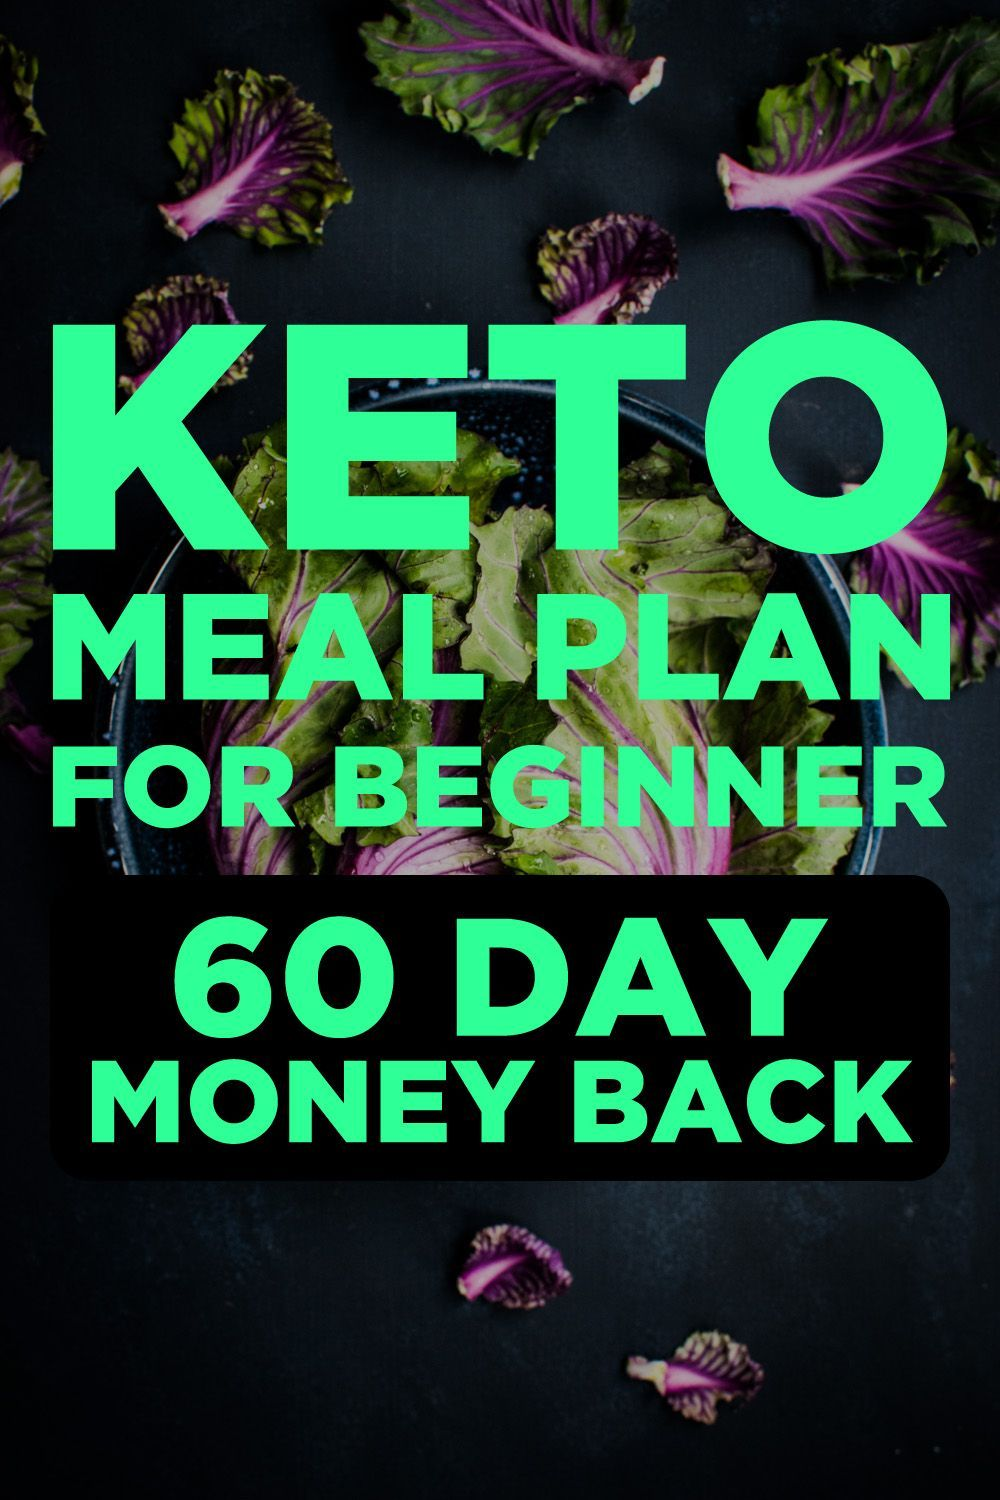 ketogenic diet recipes easy, diet recipes healthy, low carb benefits, lose diet, hitt workout, workout lose, ketogenic recipes dinner keto, lose 80 pounds in 6 months, protien diet, foods that burn belly fat fast, low carb diet vegetables, low fat diet foods list, how to lost weight fast, weight loss fitness, keto diet vitamins, keto diet supplements, diets plans to lose weight for men, healthy eating recipes, low carb diet before and after, low carb keto recipes, weight lose